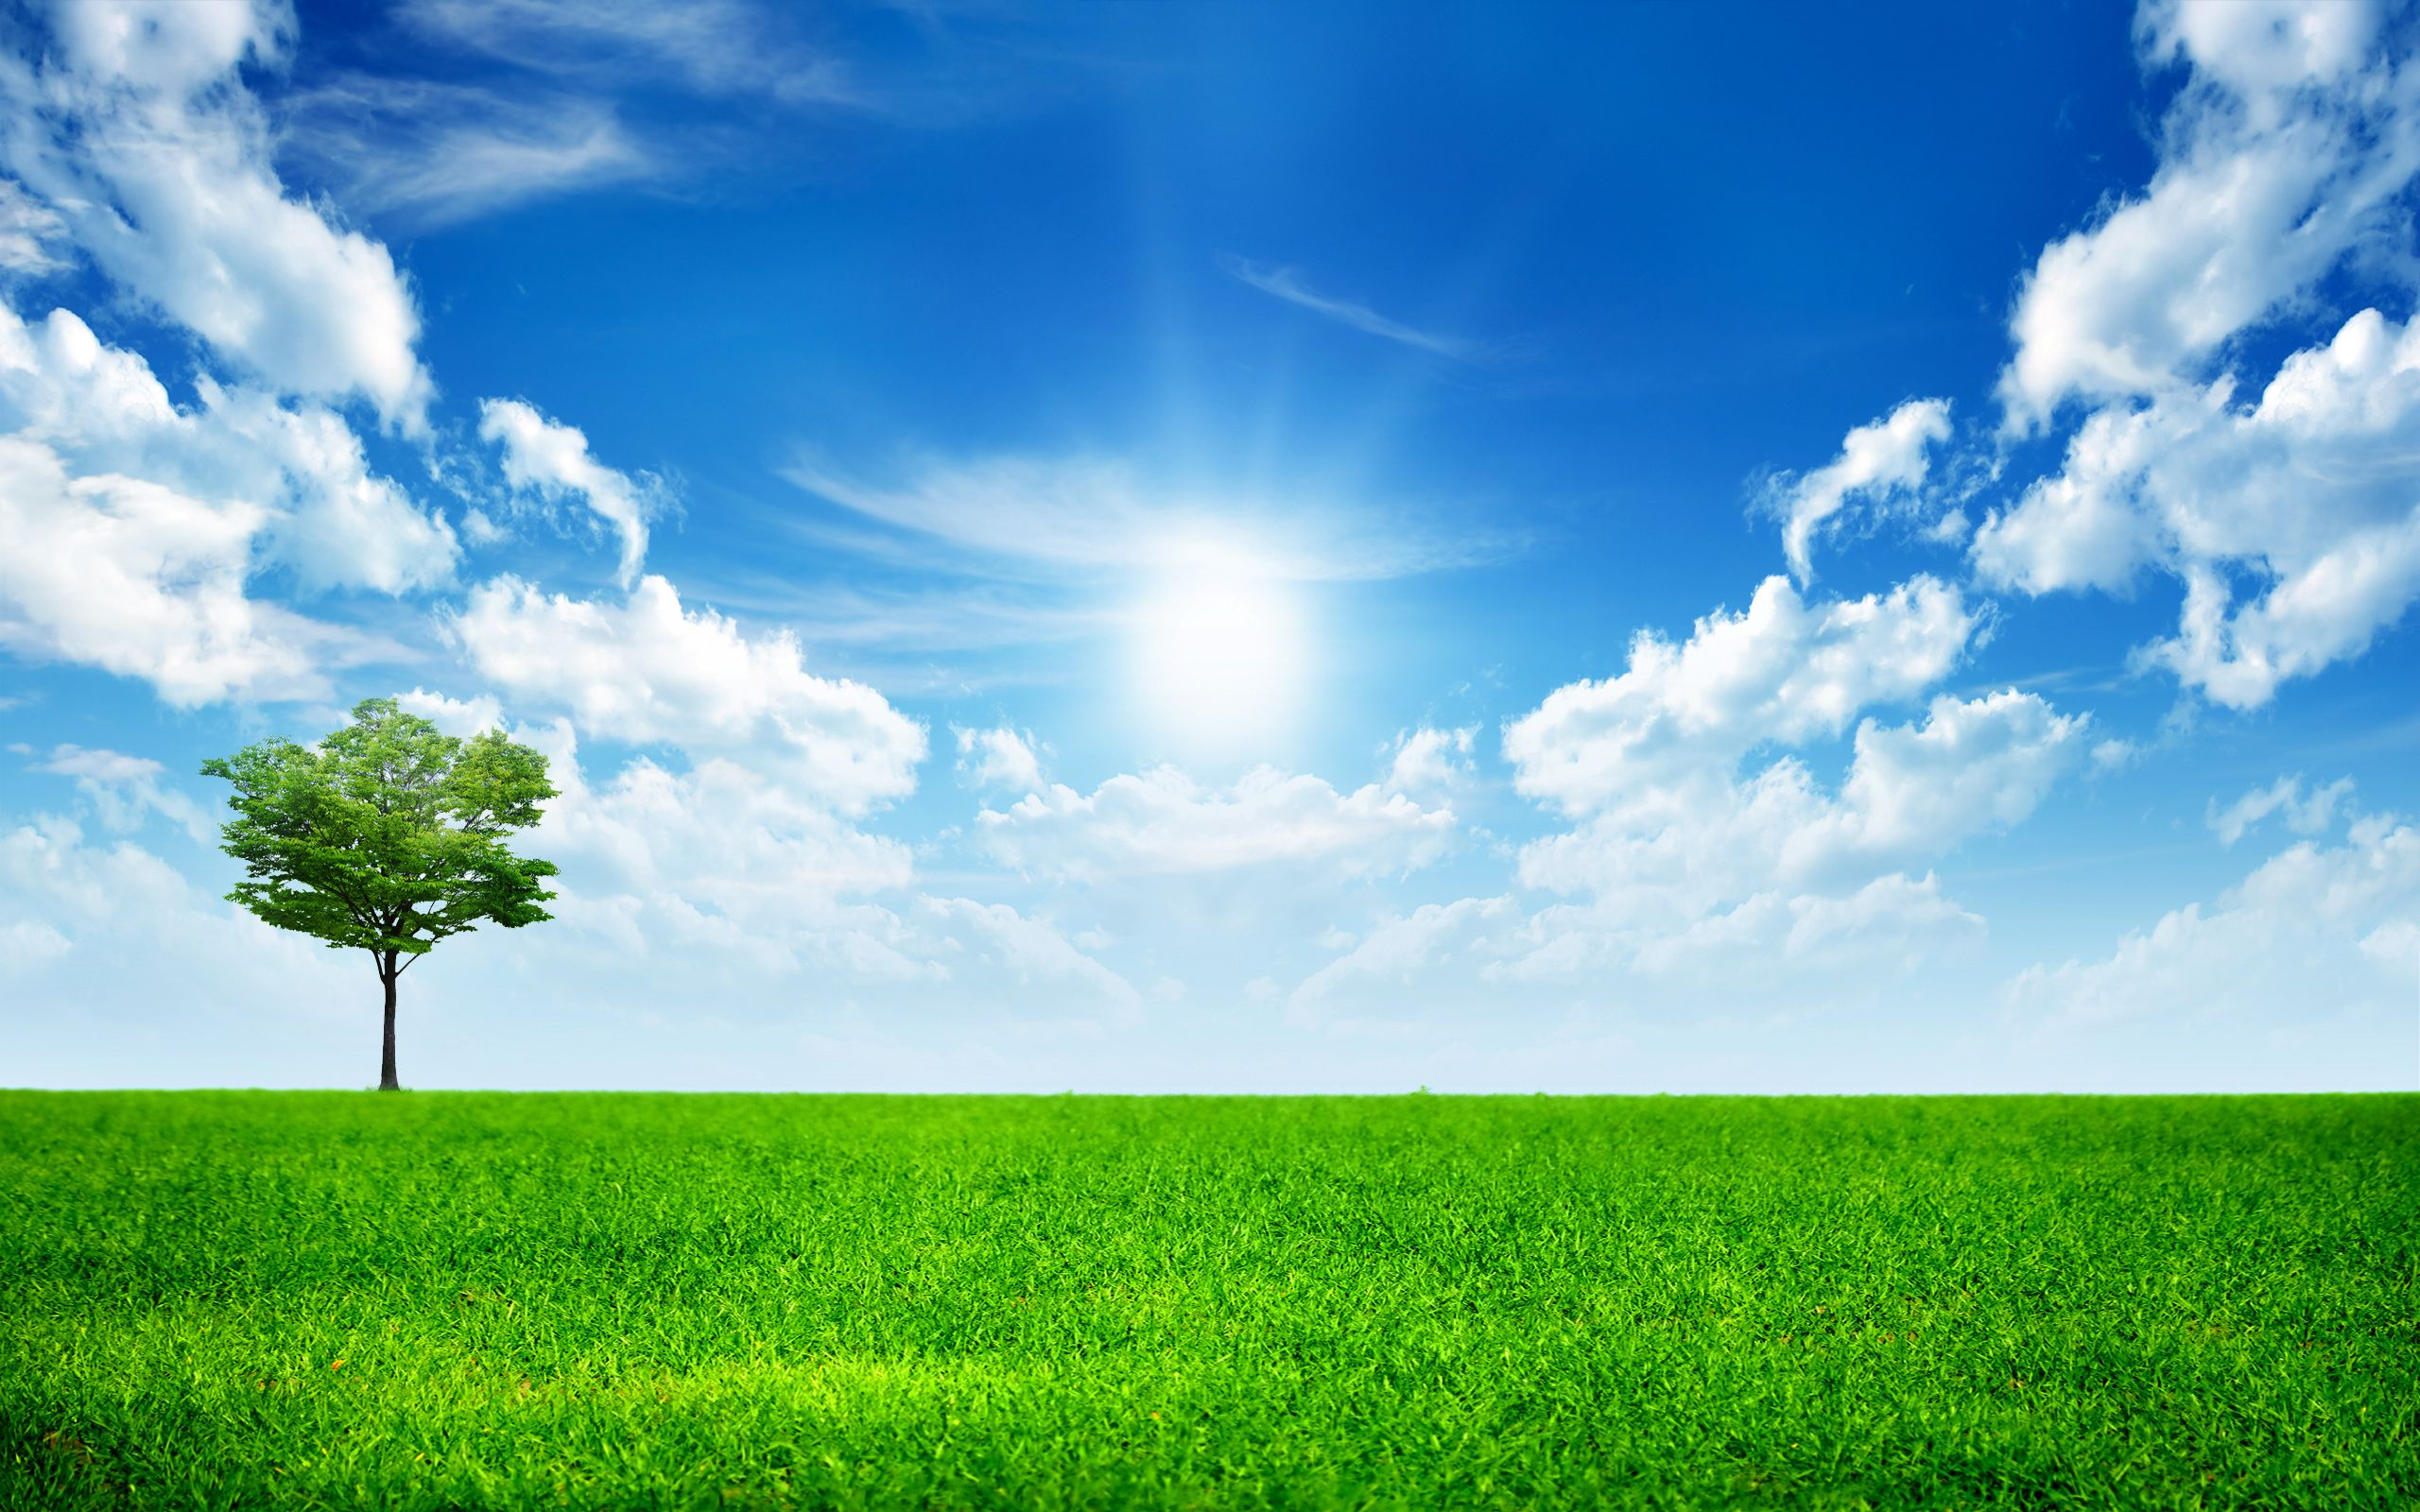 Sunny Bright Day Nature Wallpapers Green Nature Wallpaper Landscape Wallpaper Blue Sky Wallpaper